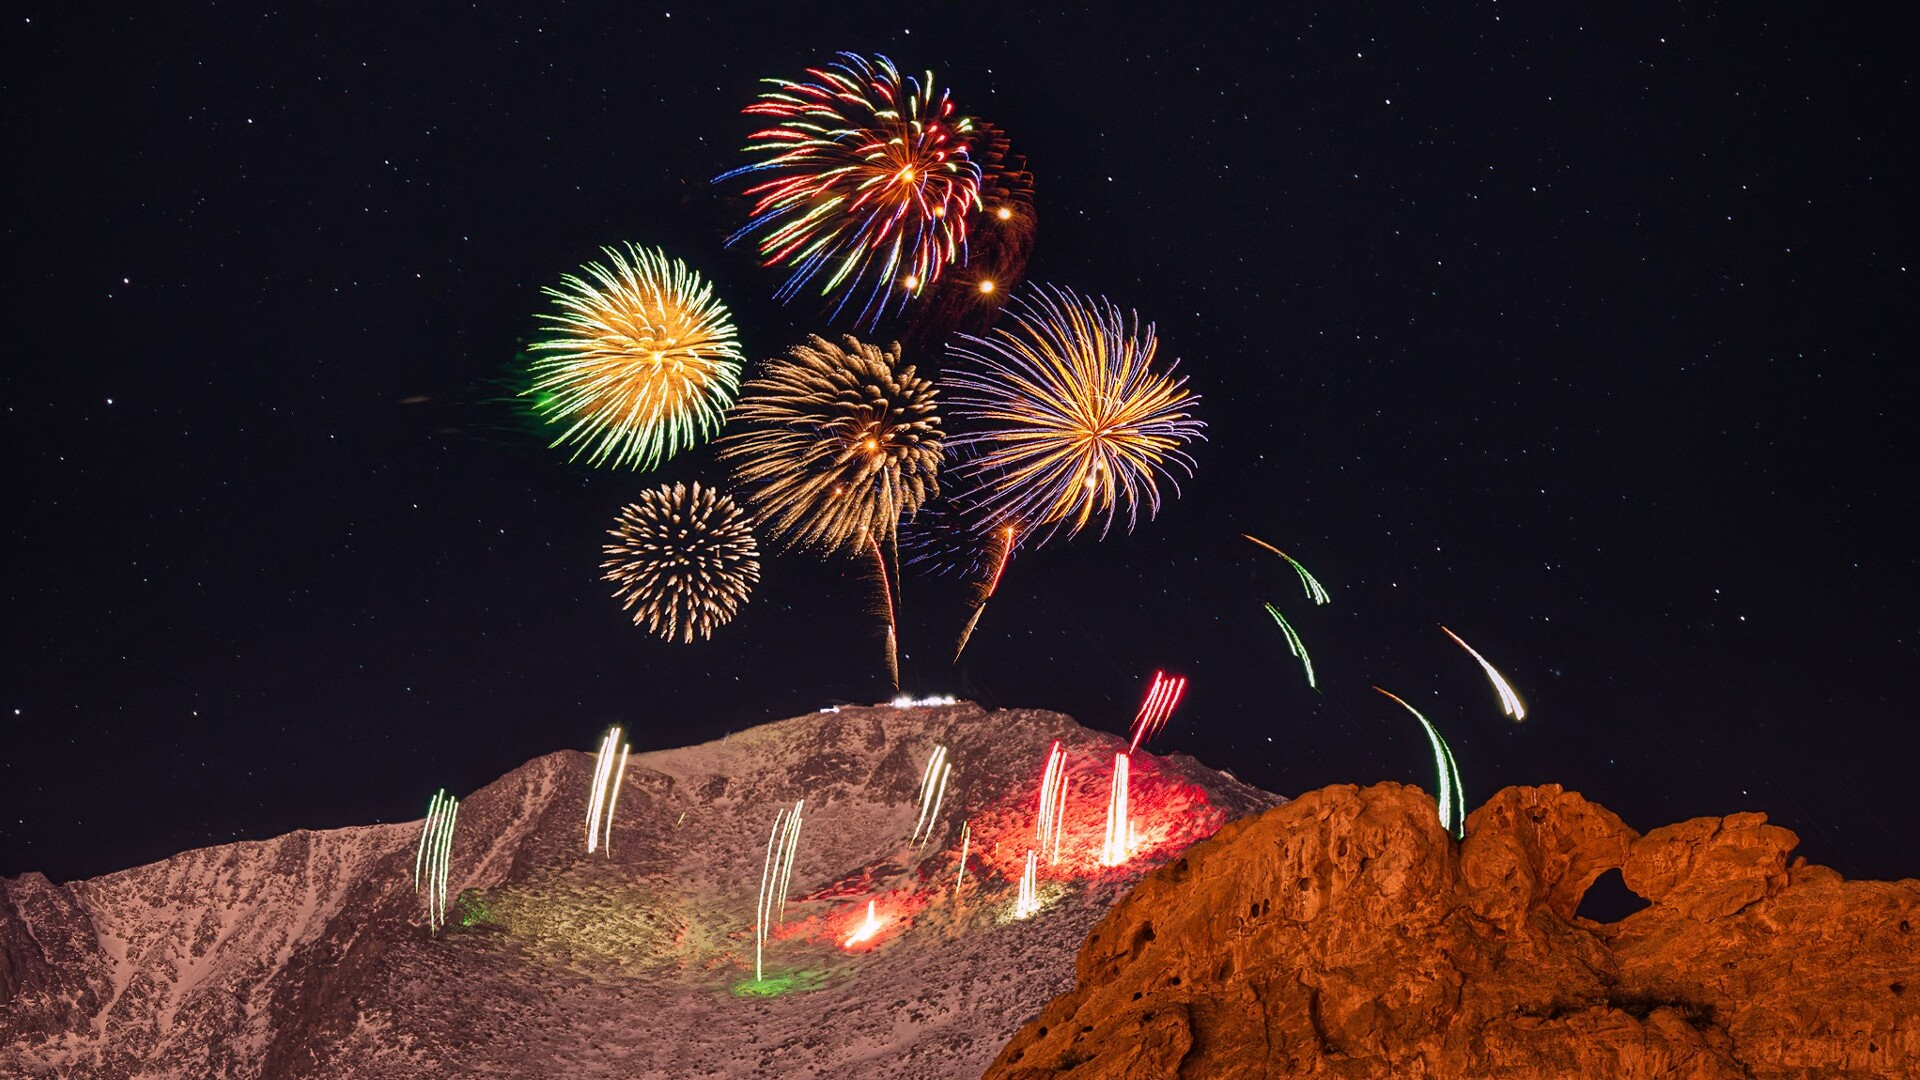 New Years Eve Fireworks on Pikes Peak from Lars Leber  Photography 2.jpg